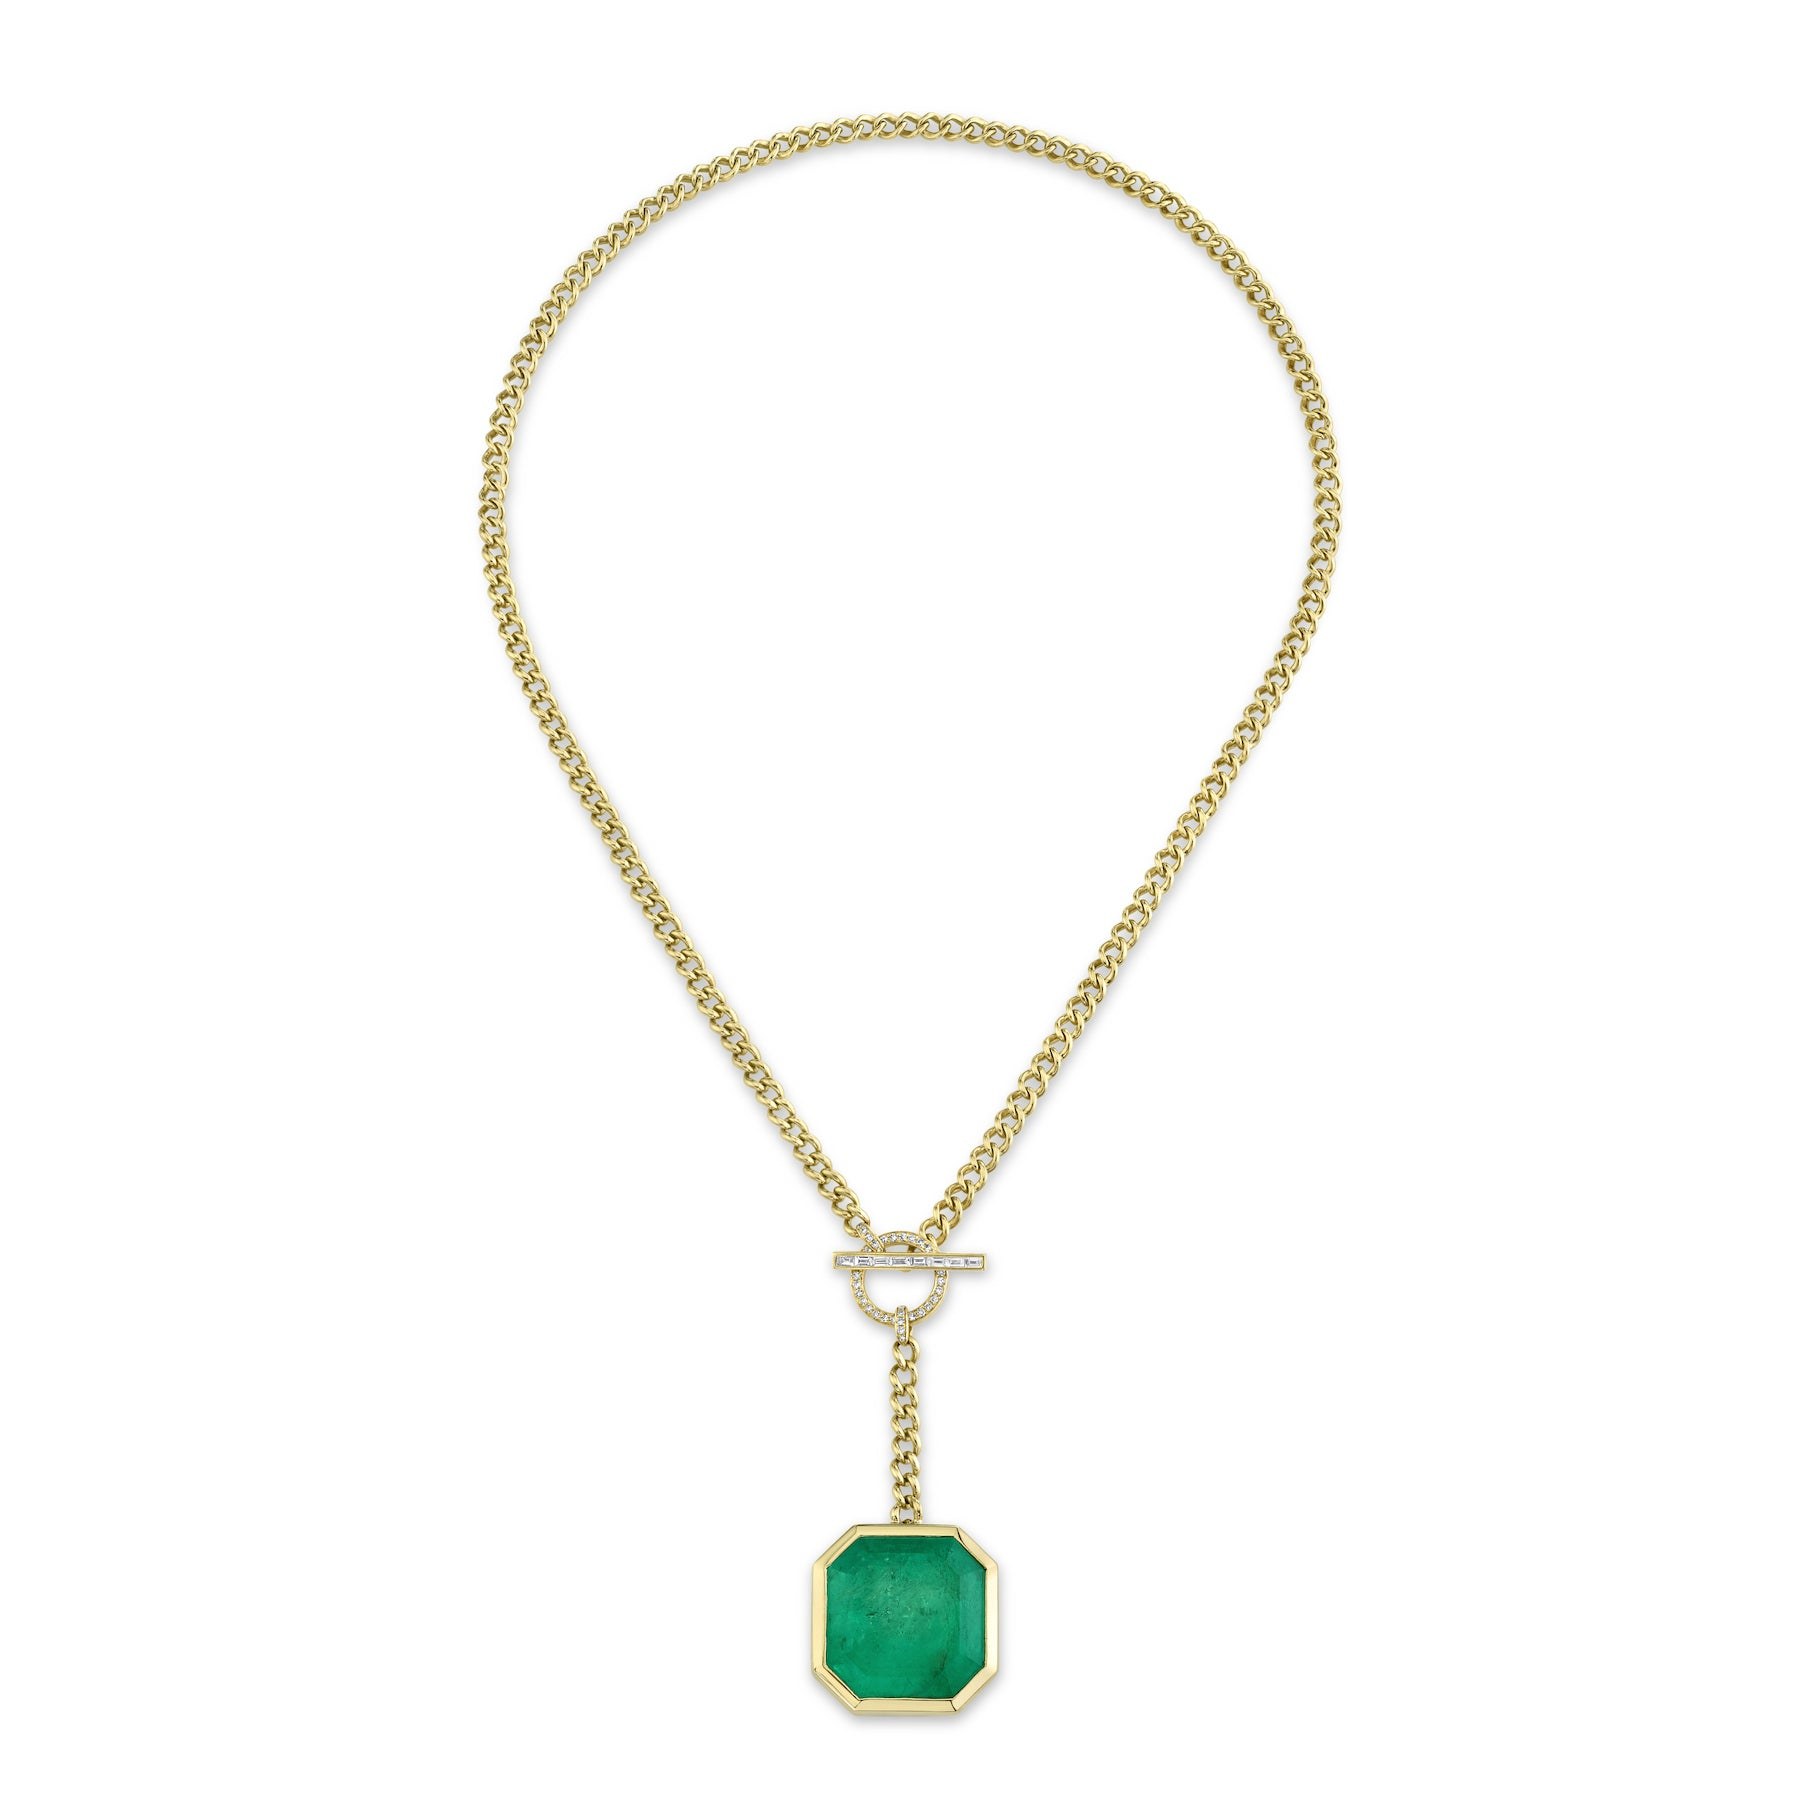 COLOMBIAN EMERALD Y DROP LARIAT